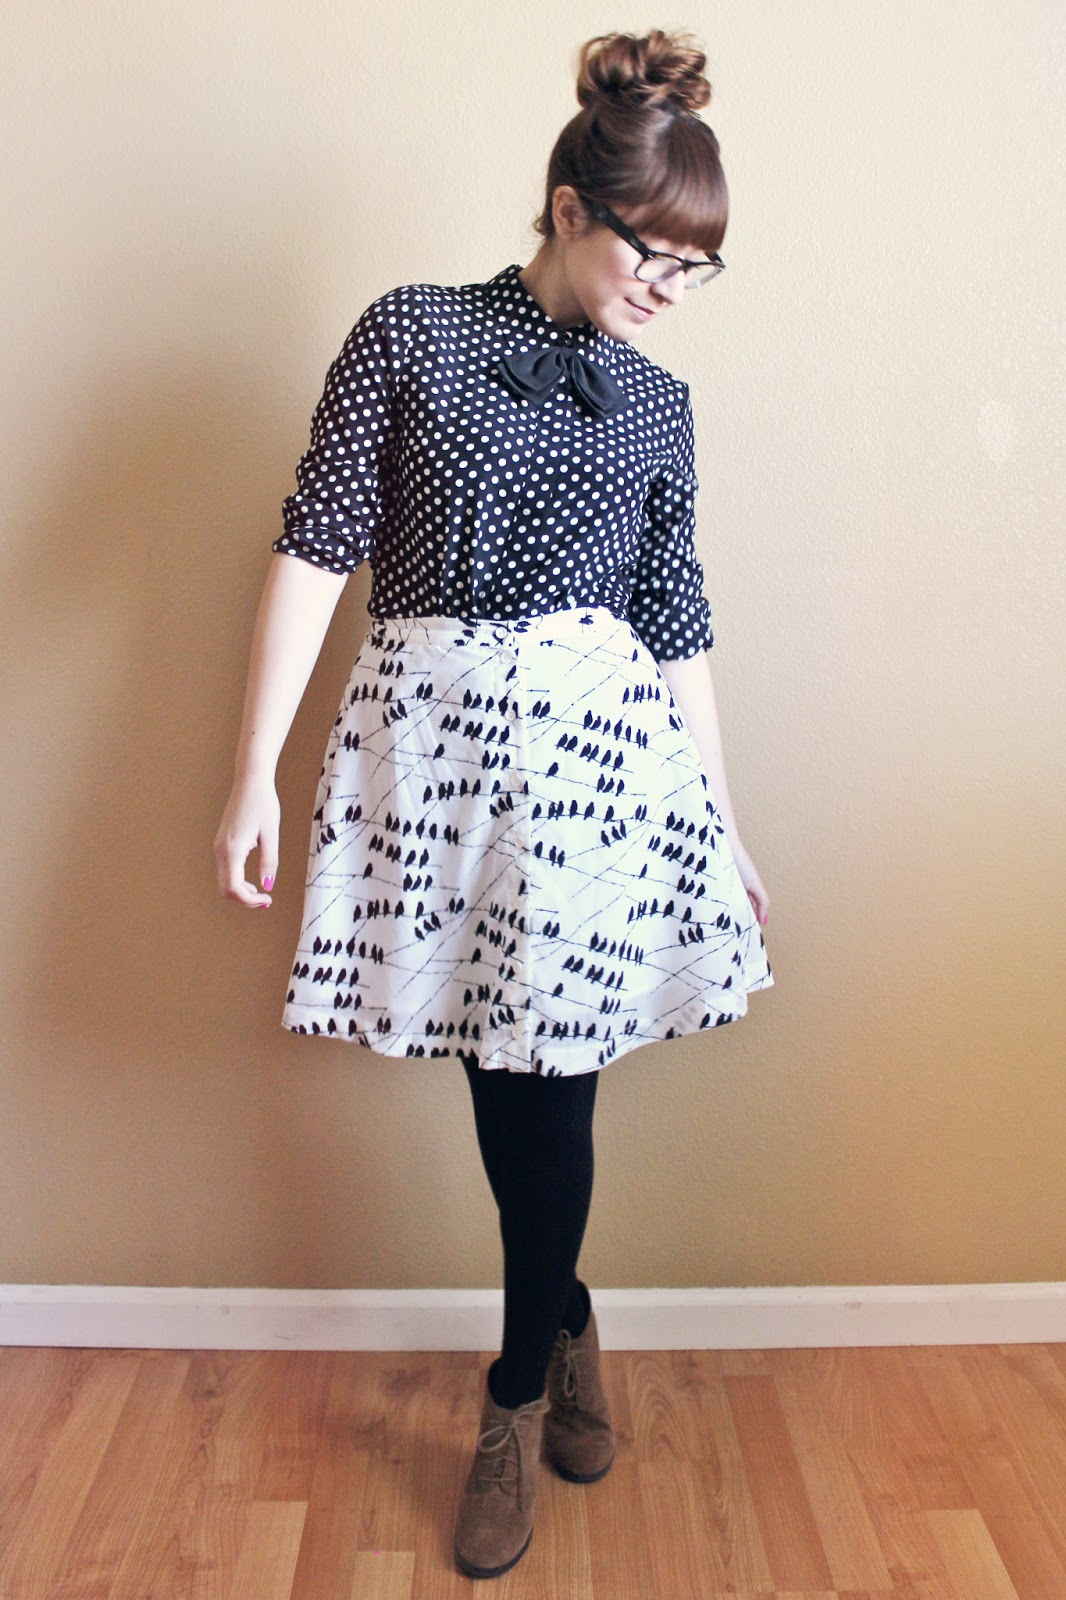 1388ed22a5 Outfit Details  Top- Popbasic    Bow tie- Urban Outfitters    Skirt-  Forever 21    Tights- Target    Boots- Franco Sarto